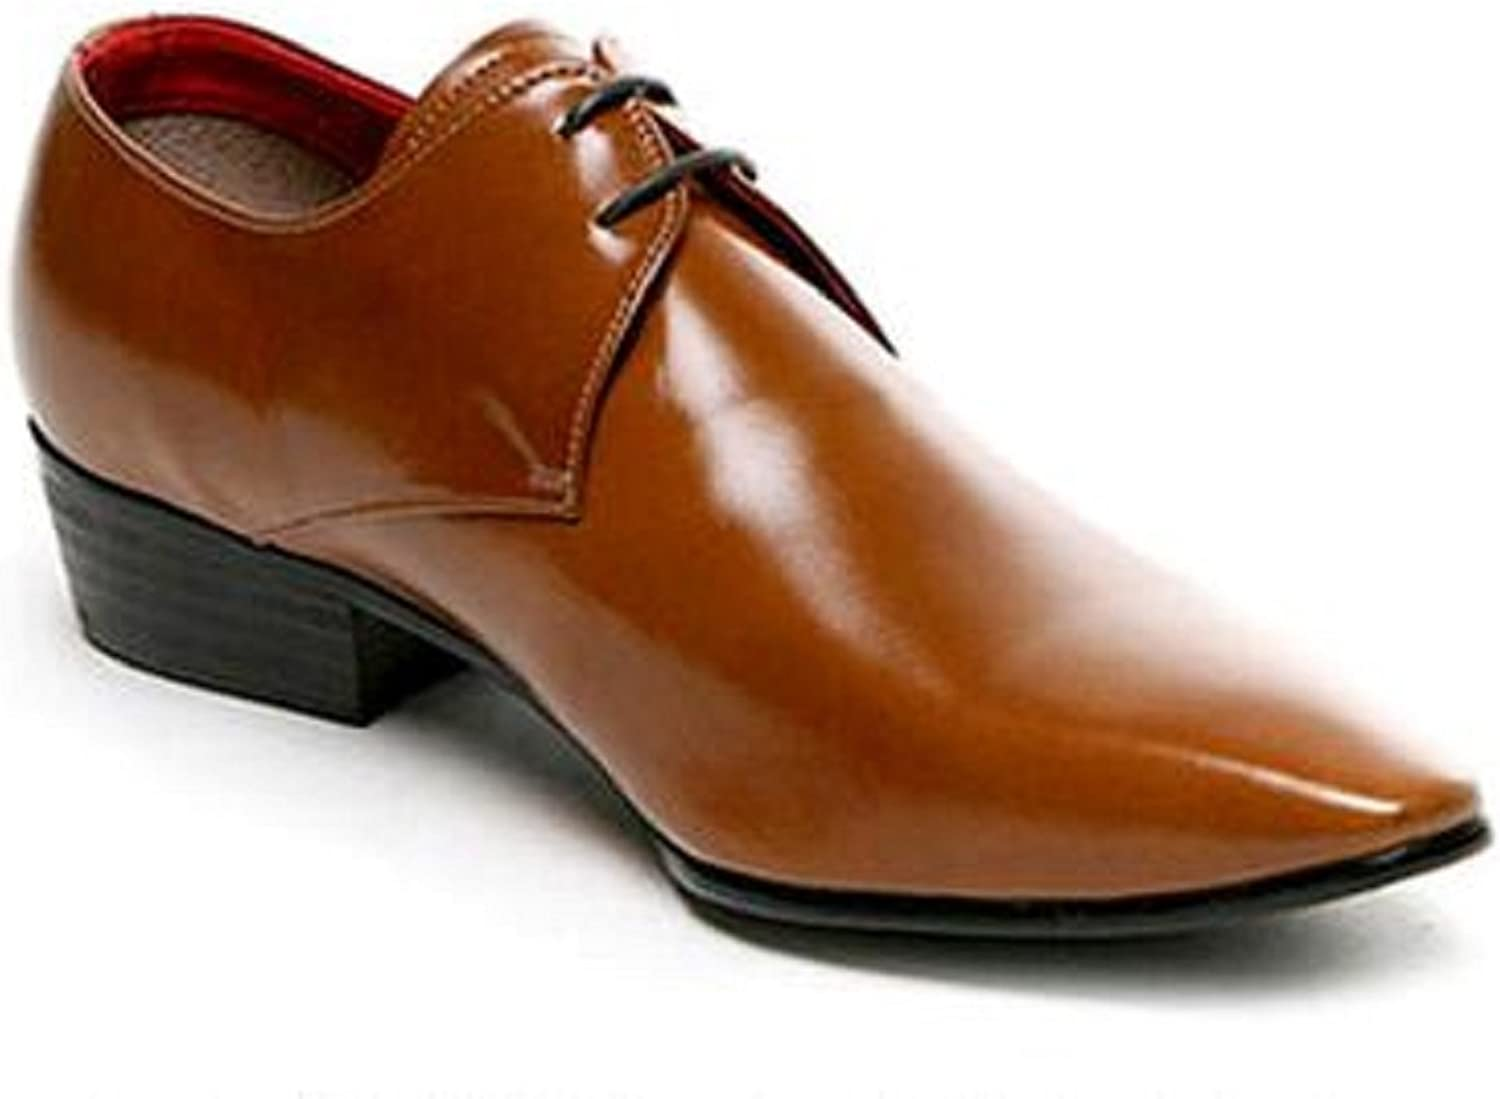 HAPPYSHOP(TM Men's Leather Lace up Pointy Toe Oxford Shoes Fashion Bright Color Casual Work Dress Business Shoes (EUR Size 38, Brown)